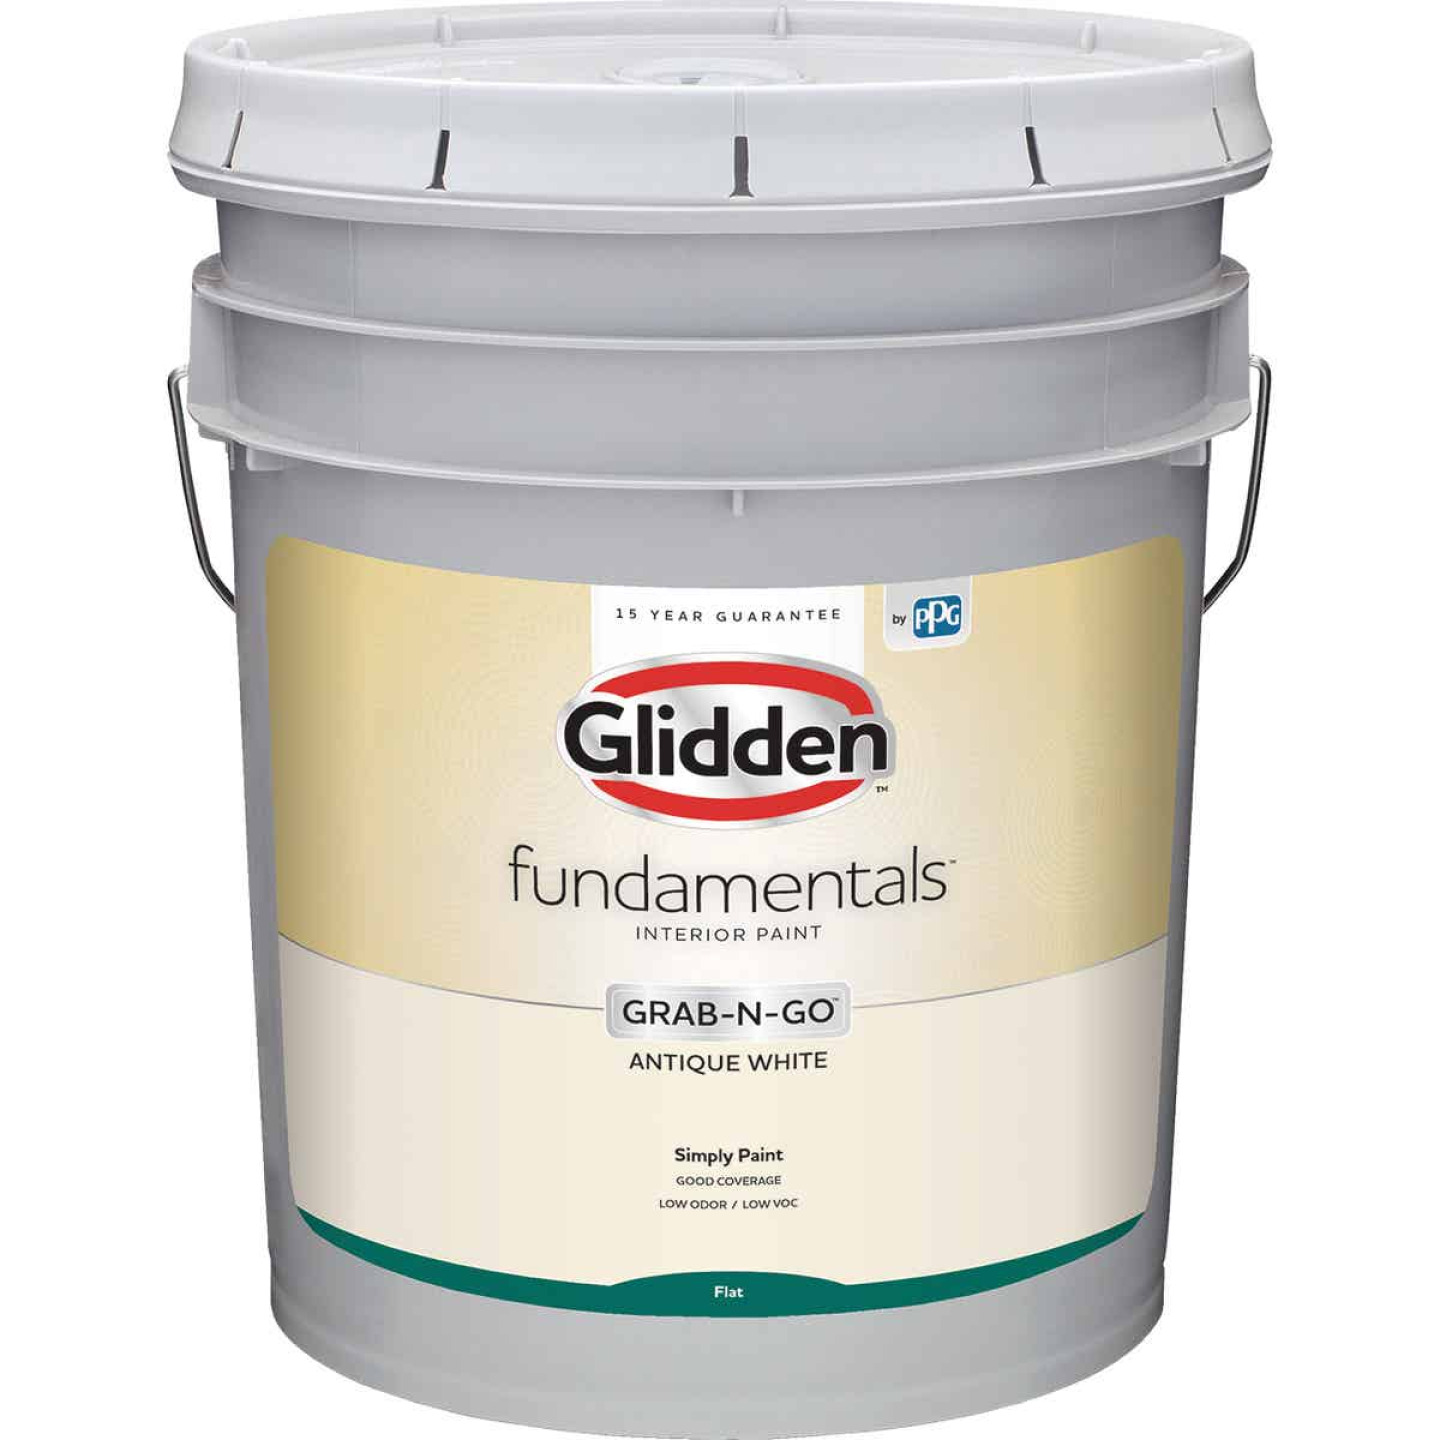 Glidden Fundamentals Grab-N-Go Antique White Flat 5 Gallon Image 1